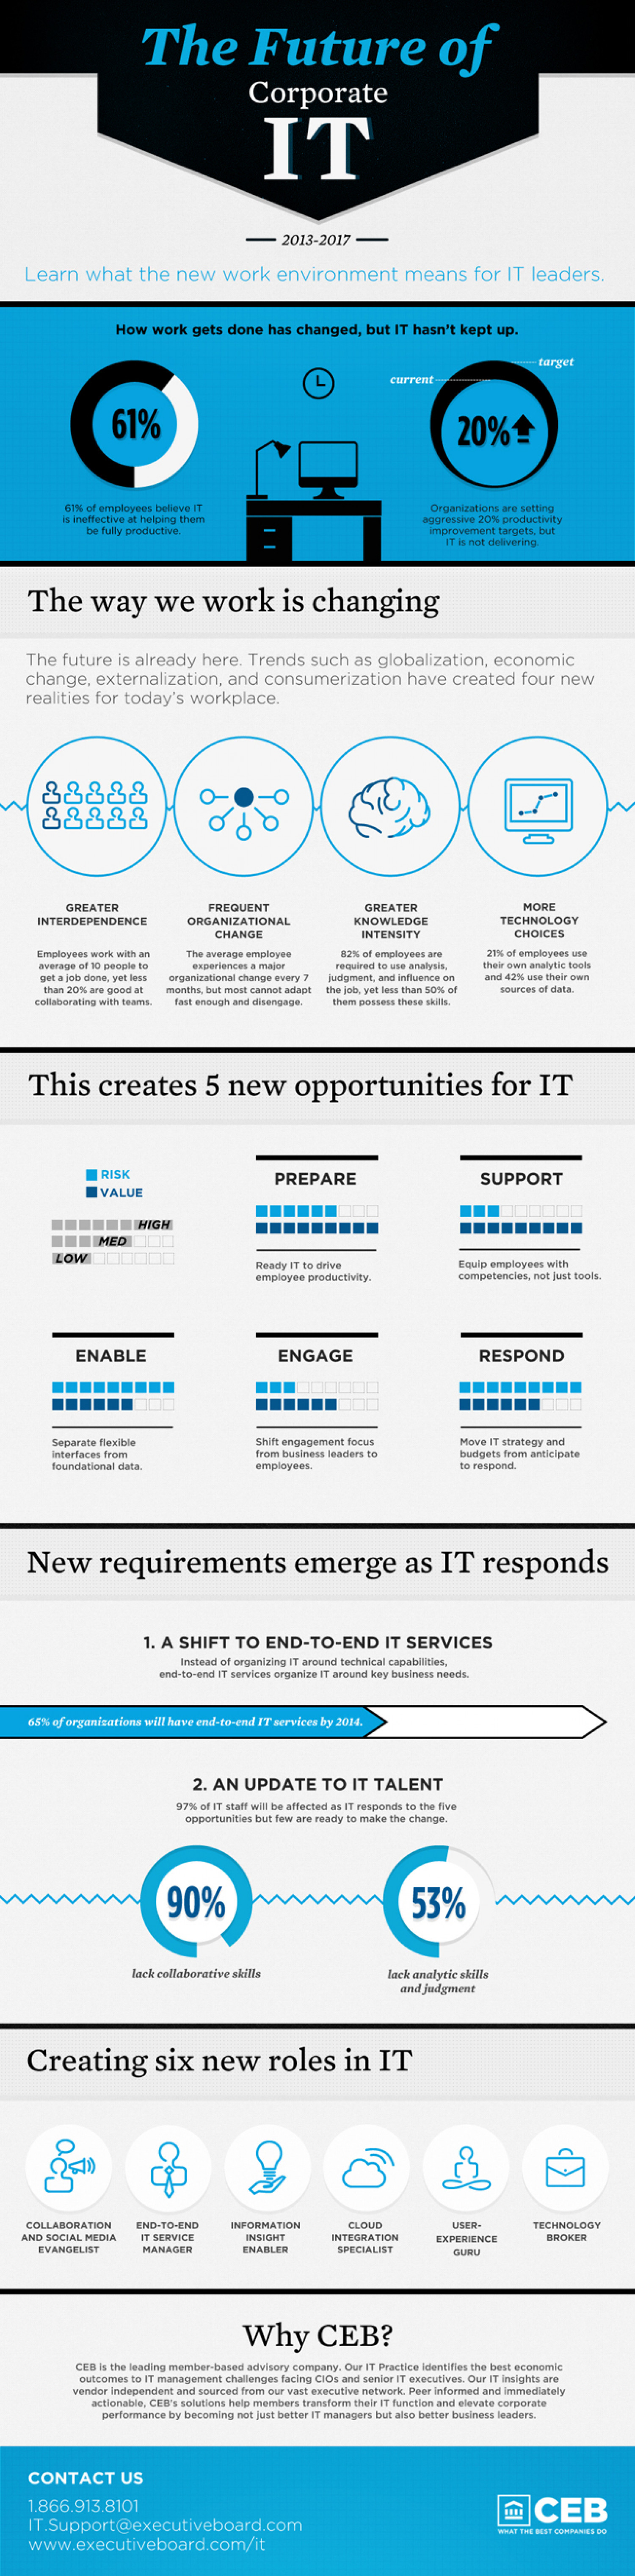 The Future of Corporate IT Infographic